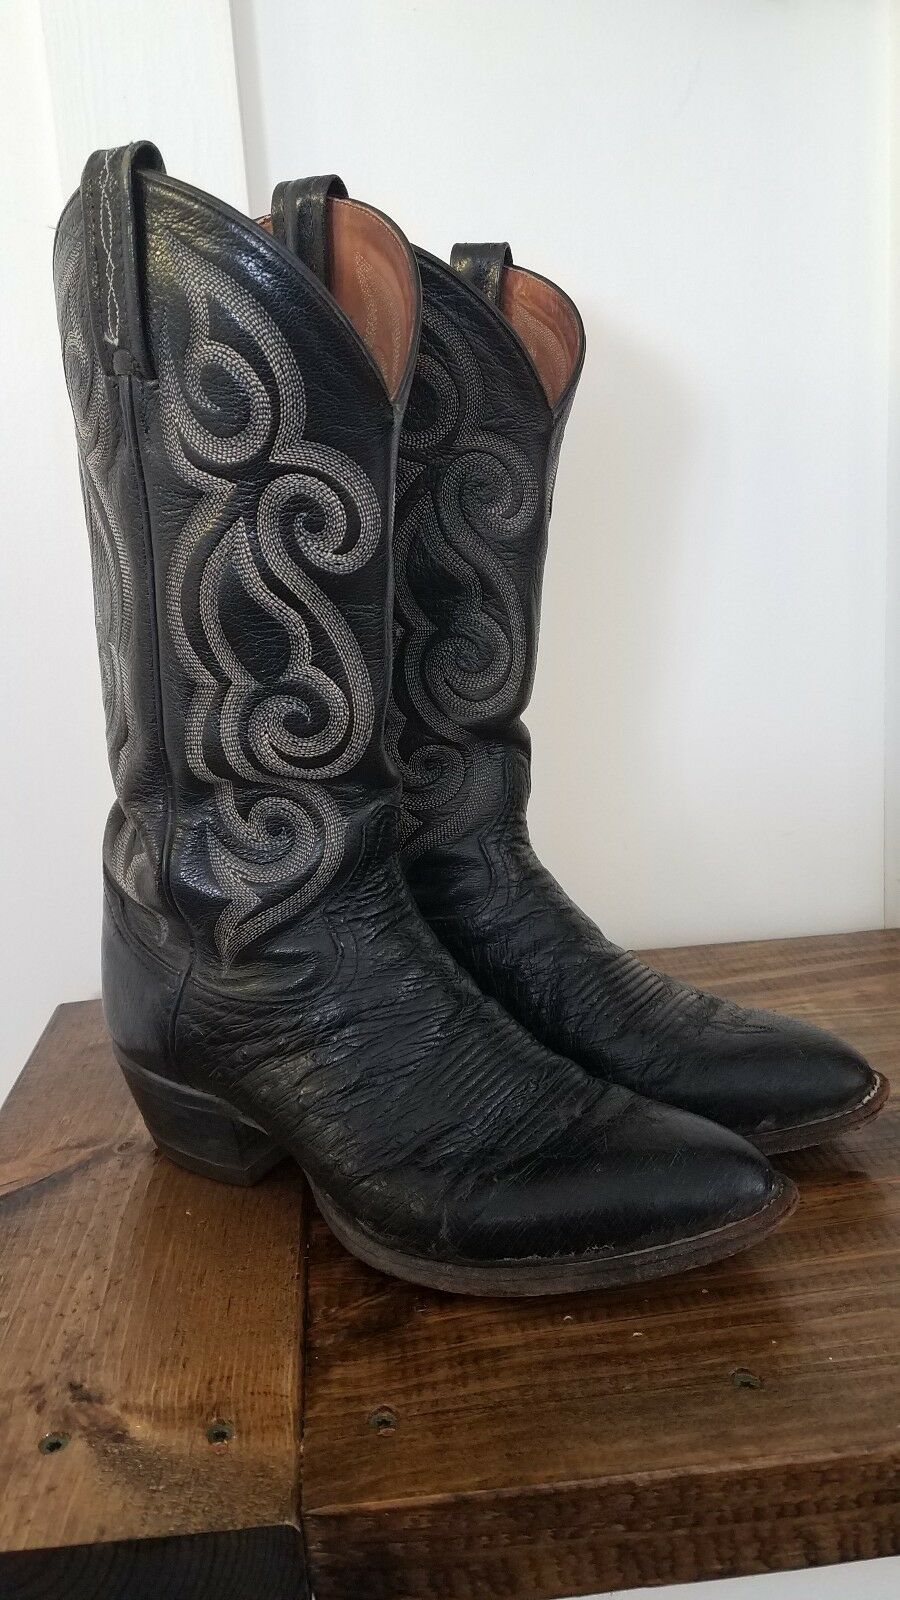 Tony lama boots Style 8410 Size 7.5B Black Ostrich Leather